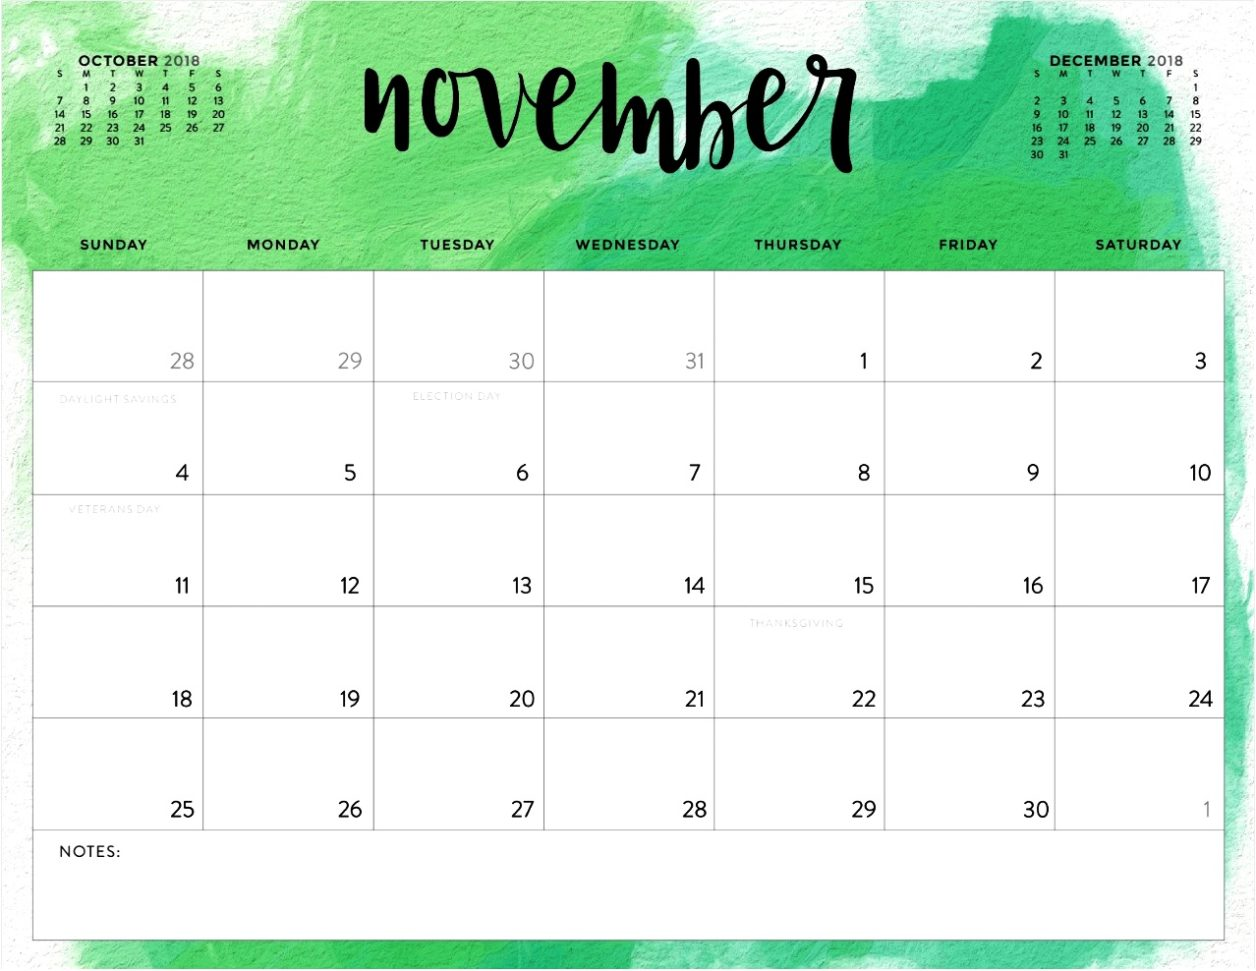 photograph about Free Printable Nov Calendar identify Get hold of Printable Calendar : November 2018 Printable Calendar